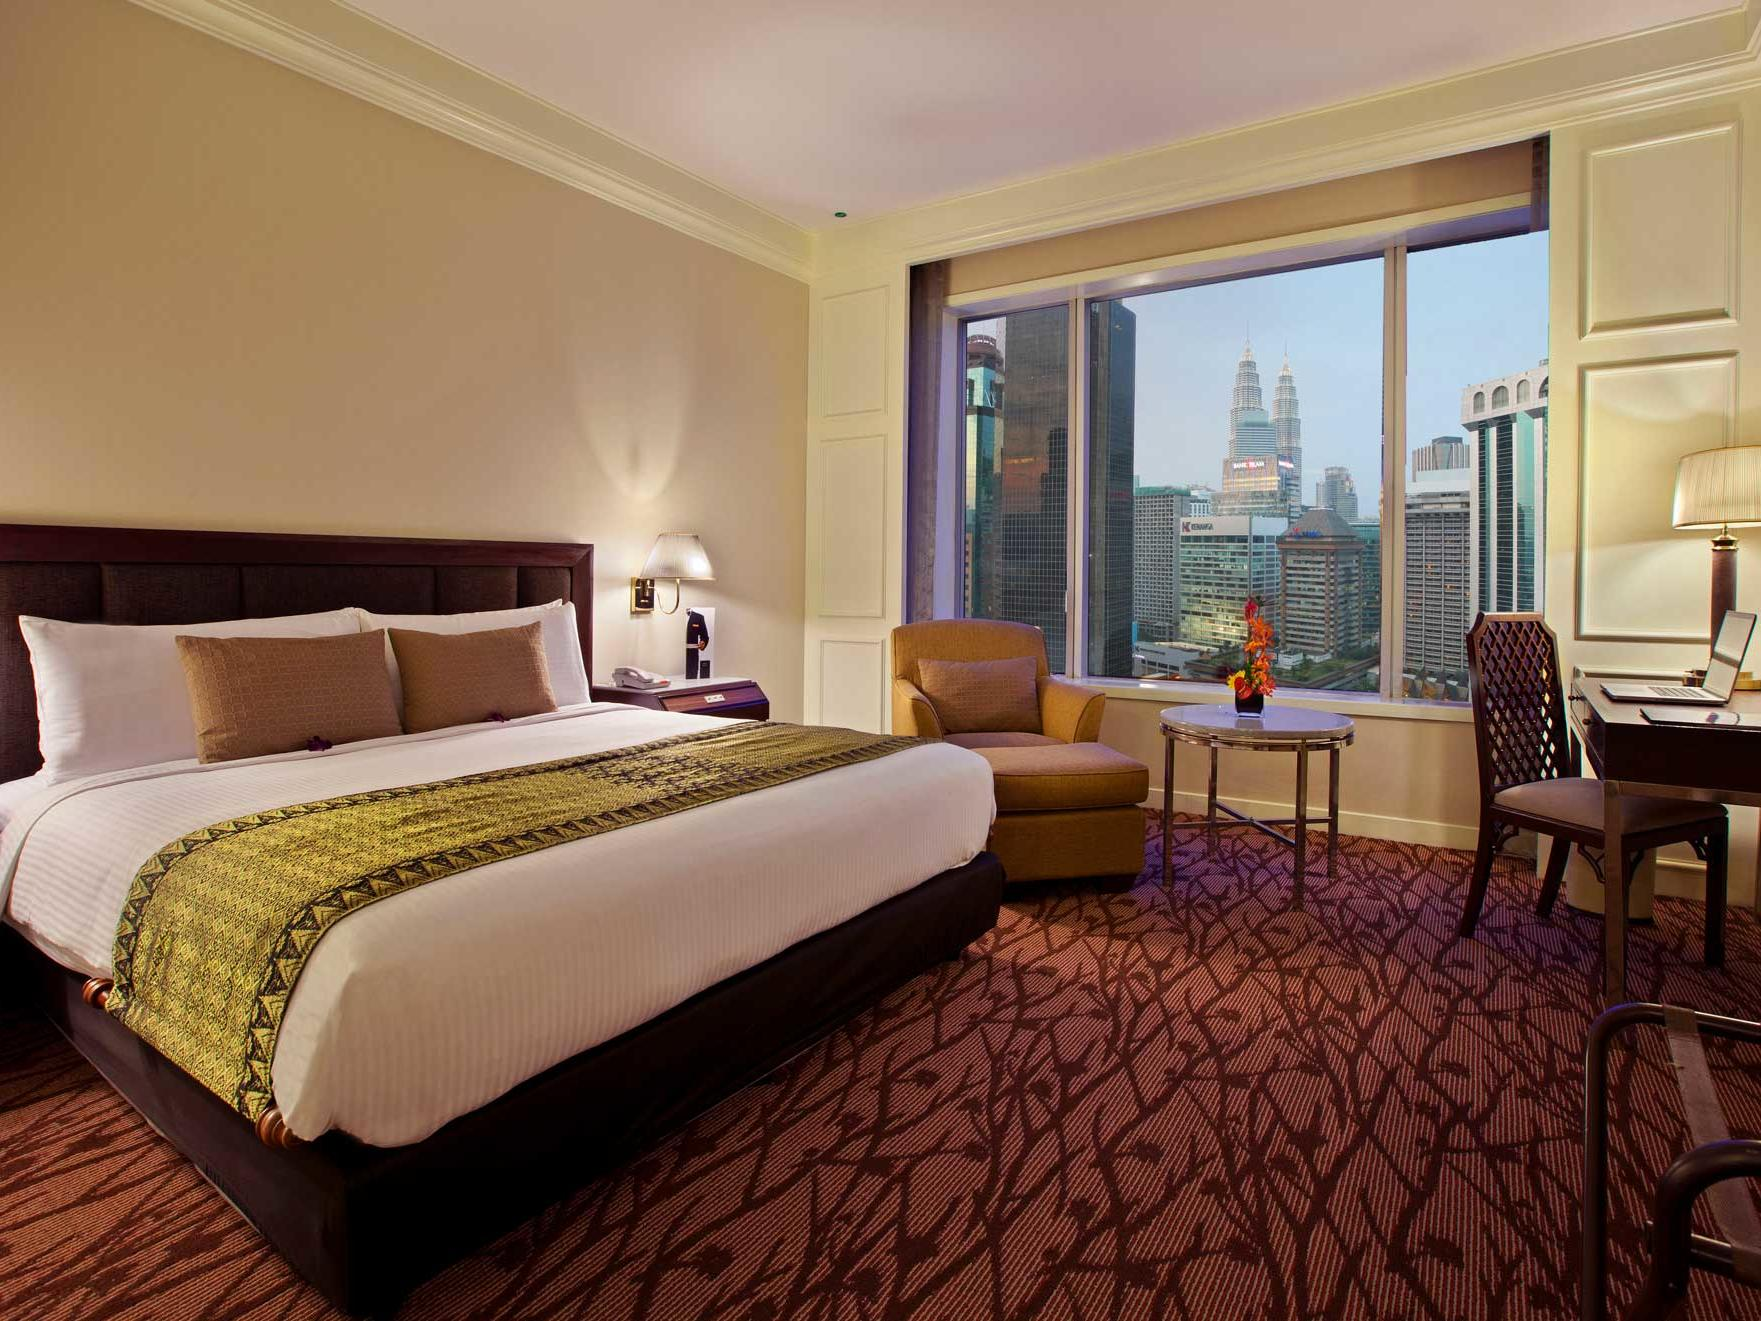 Deluxe Room with a view of Kuala Lumpur city centre